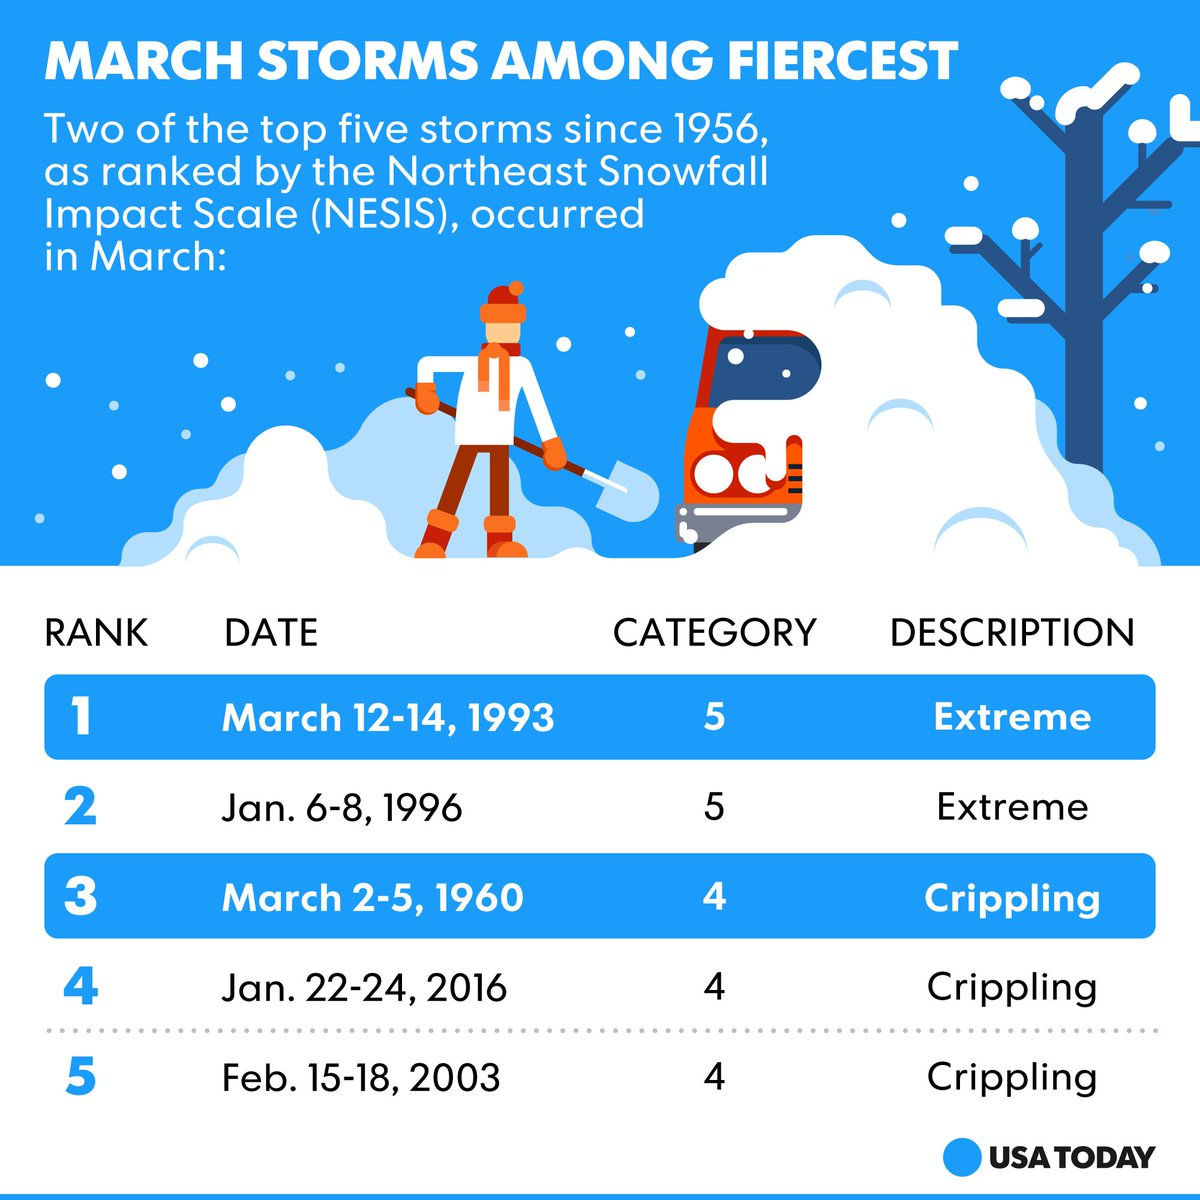 March winter storms are few, but they can be fierce